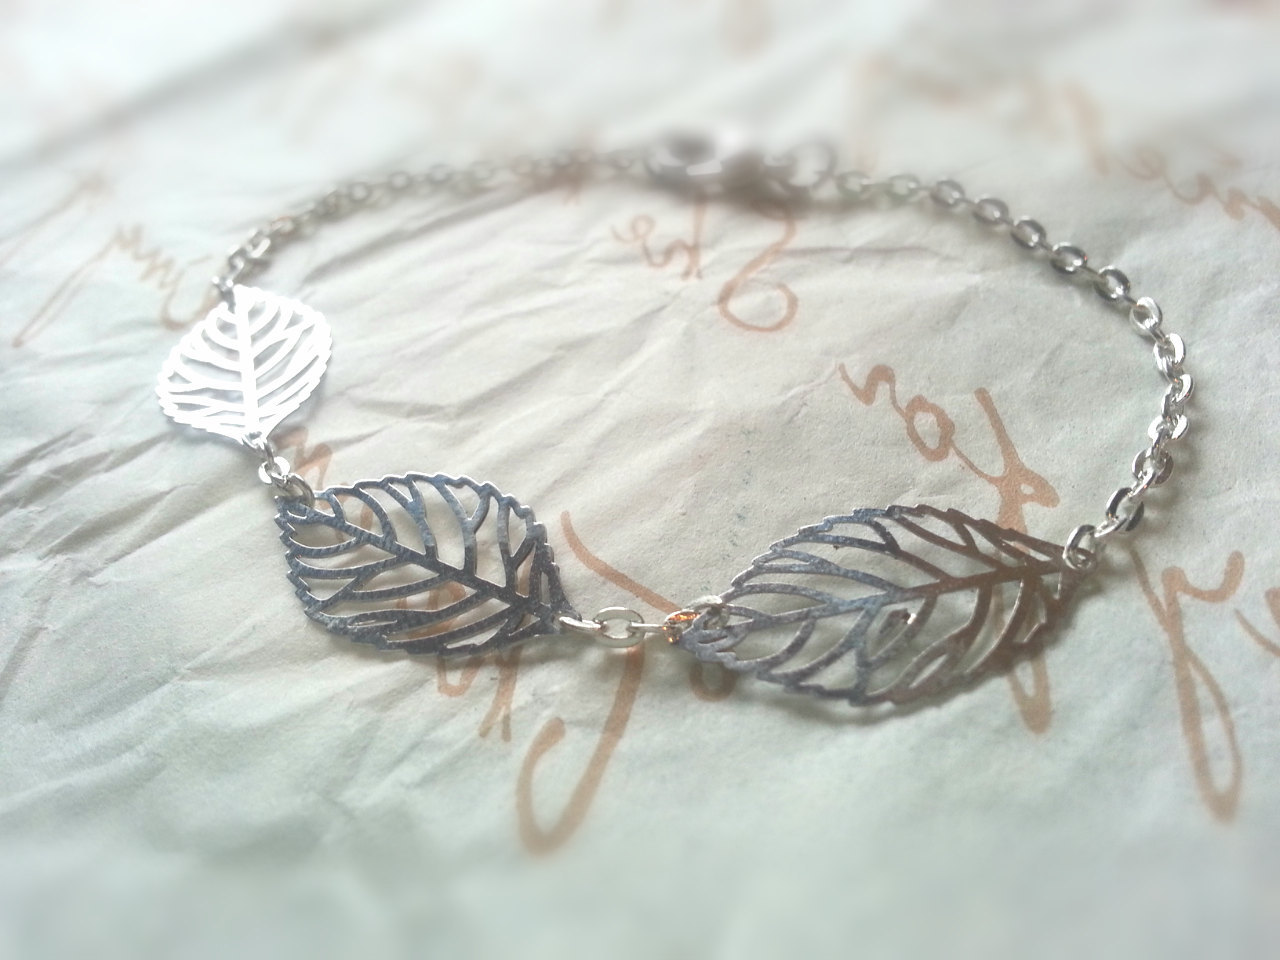 Tiny Silver Leaves Bracelet Tiny Silver Skeleton Leaves Bracelet Silver Filigree